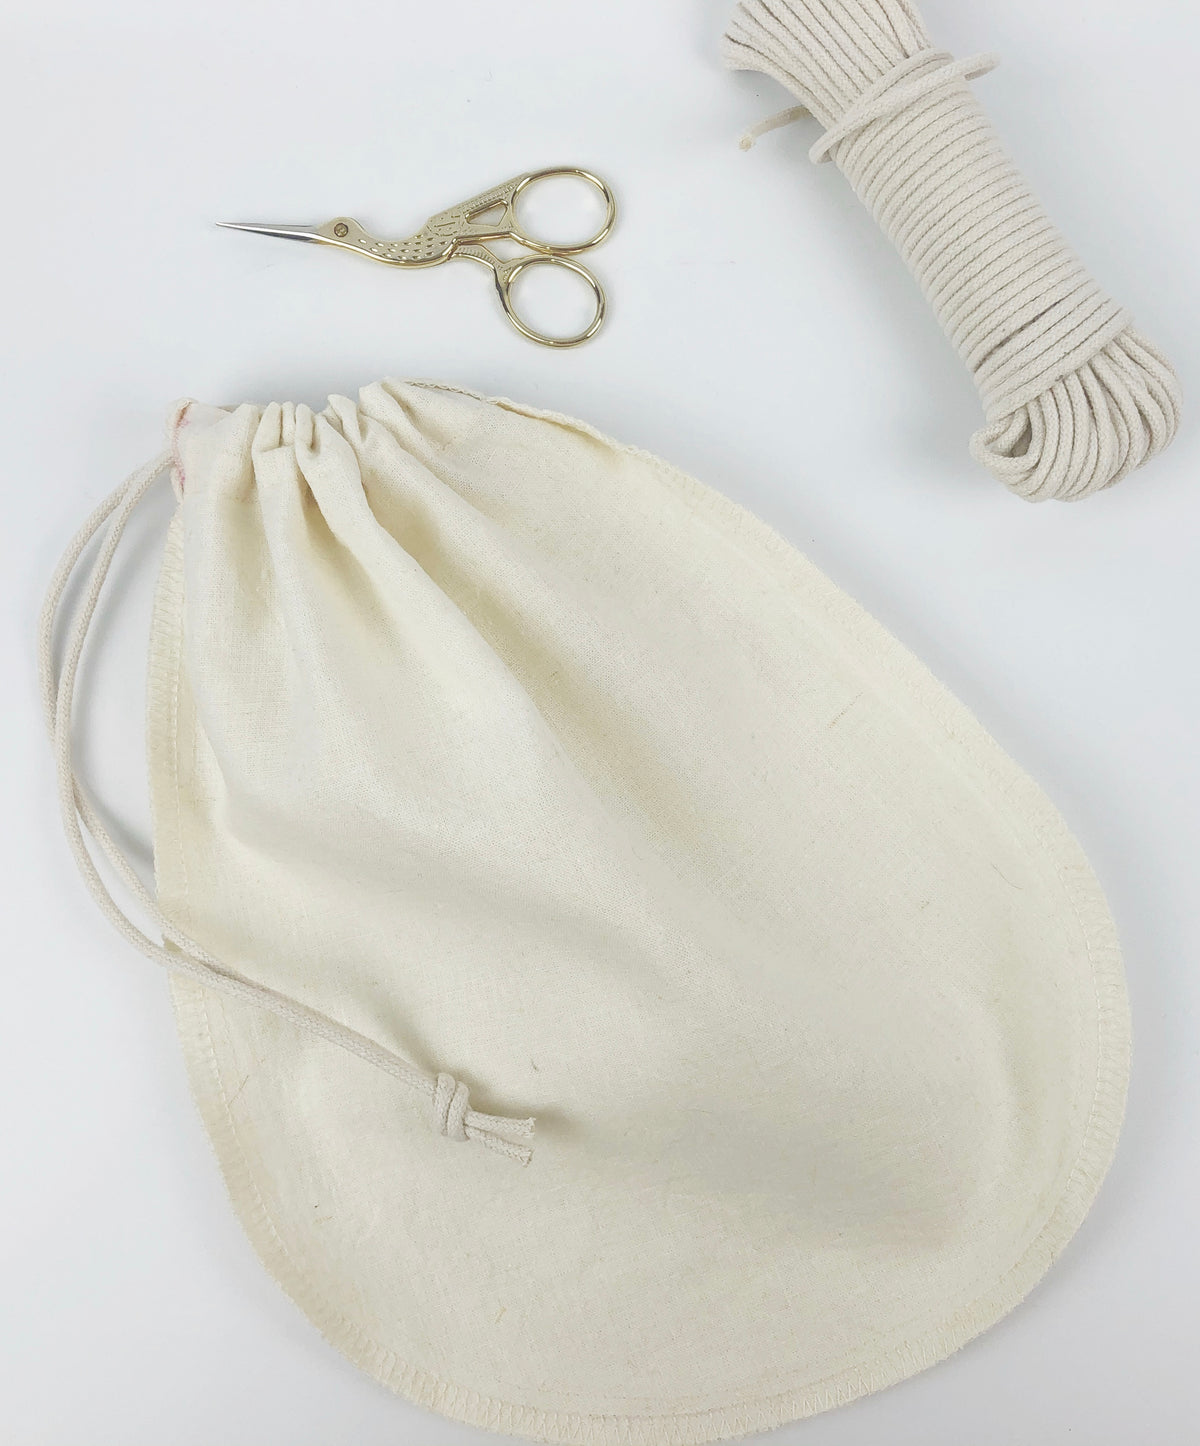 DIY Hemp Organic Cotton Nut Milking Bag